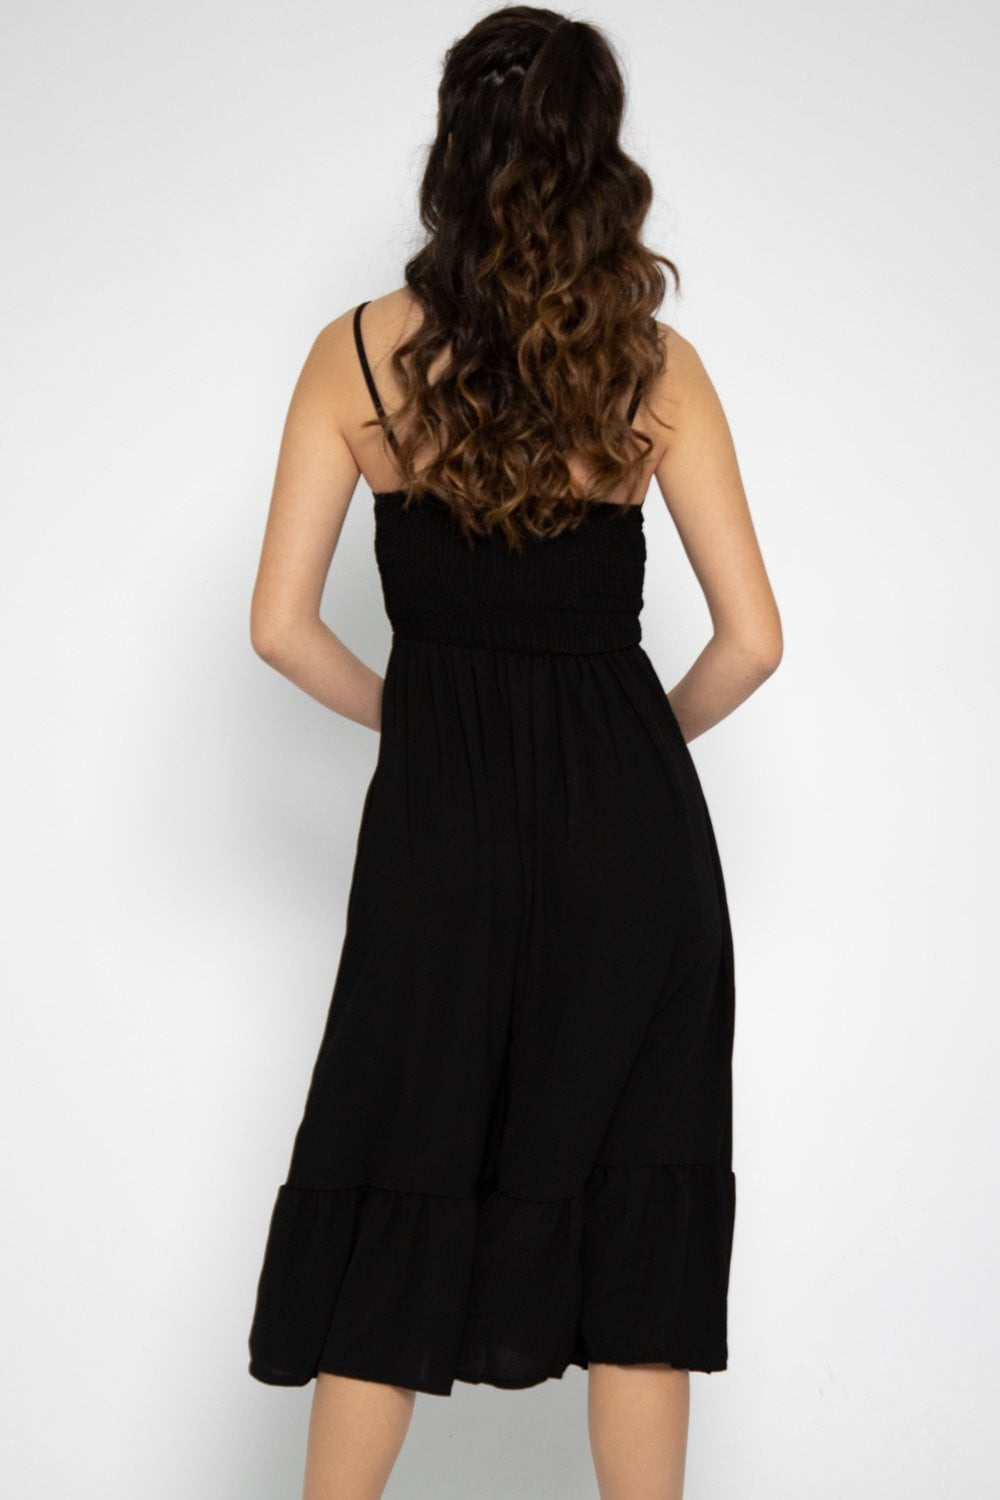 Amelia Ruffle Midi Dress in Black - Three One Duo